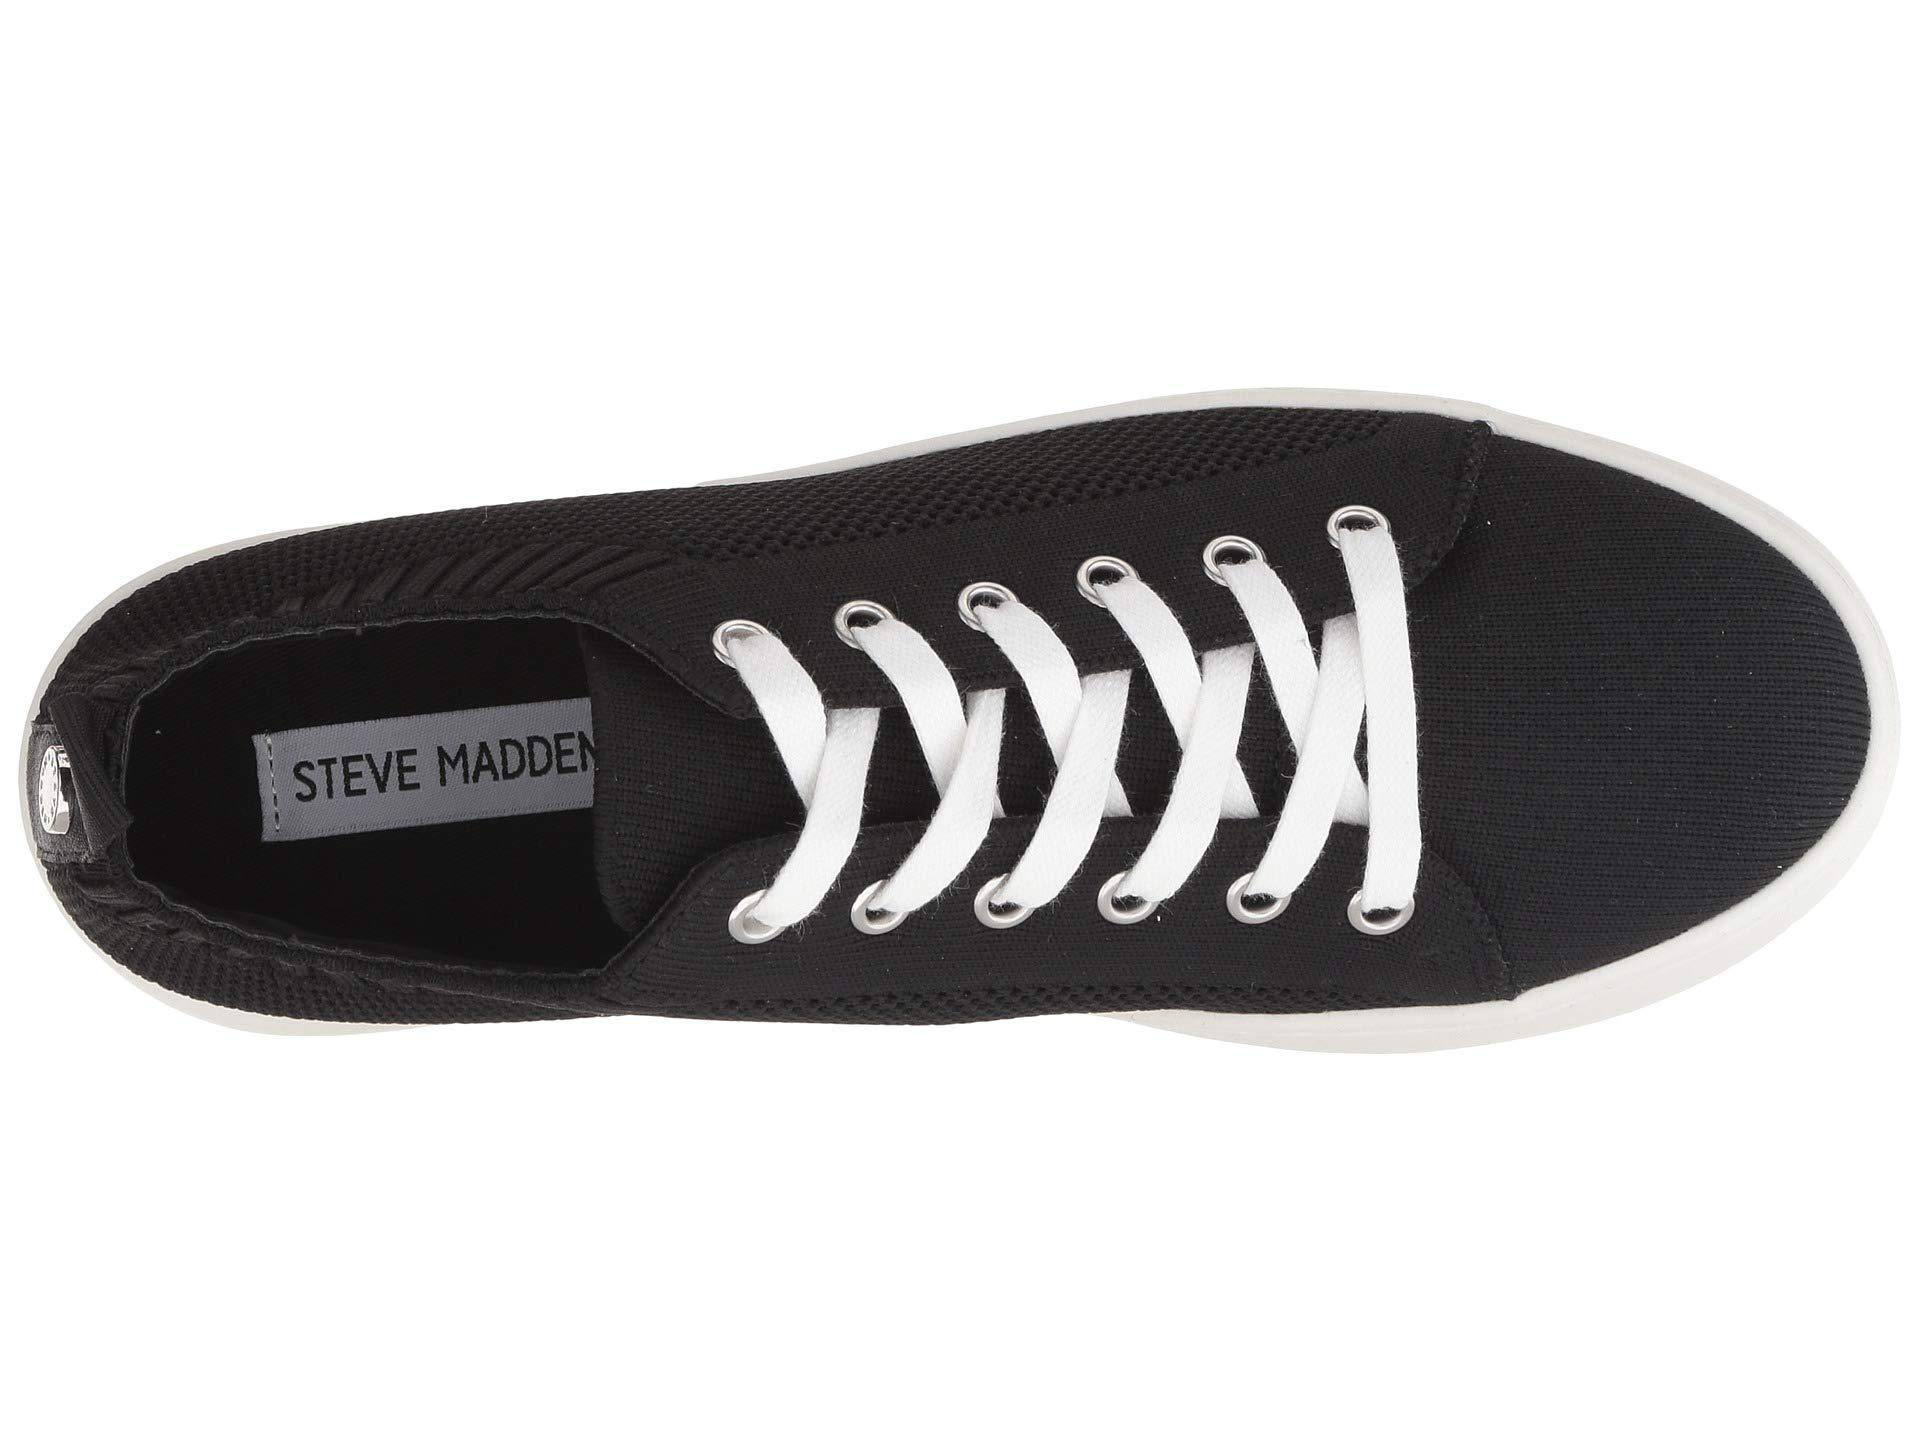 a8dd1d29a31 Steve Madden - Black Bardo Sneaker (blush) Women s Lace Up Casual Shoes -  Lyst. View fullscreen